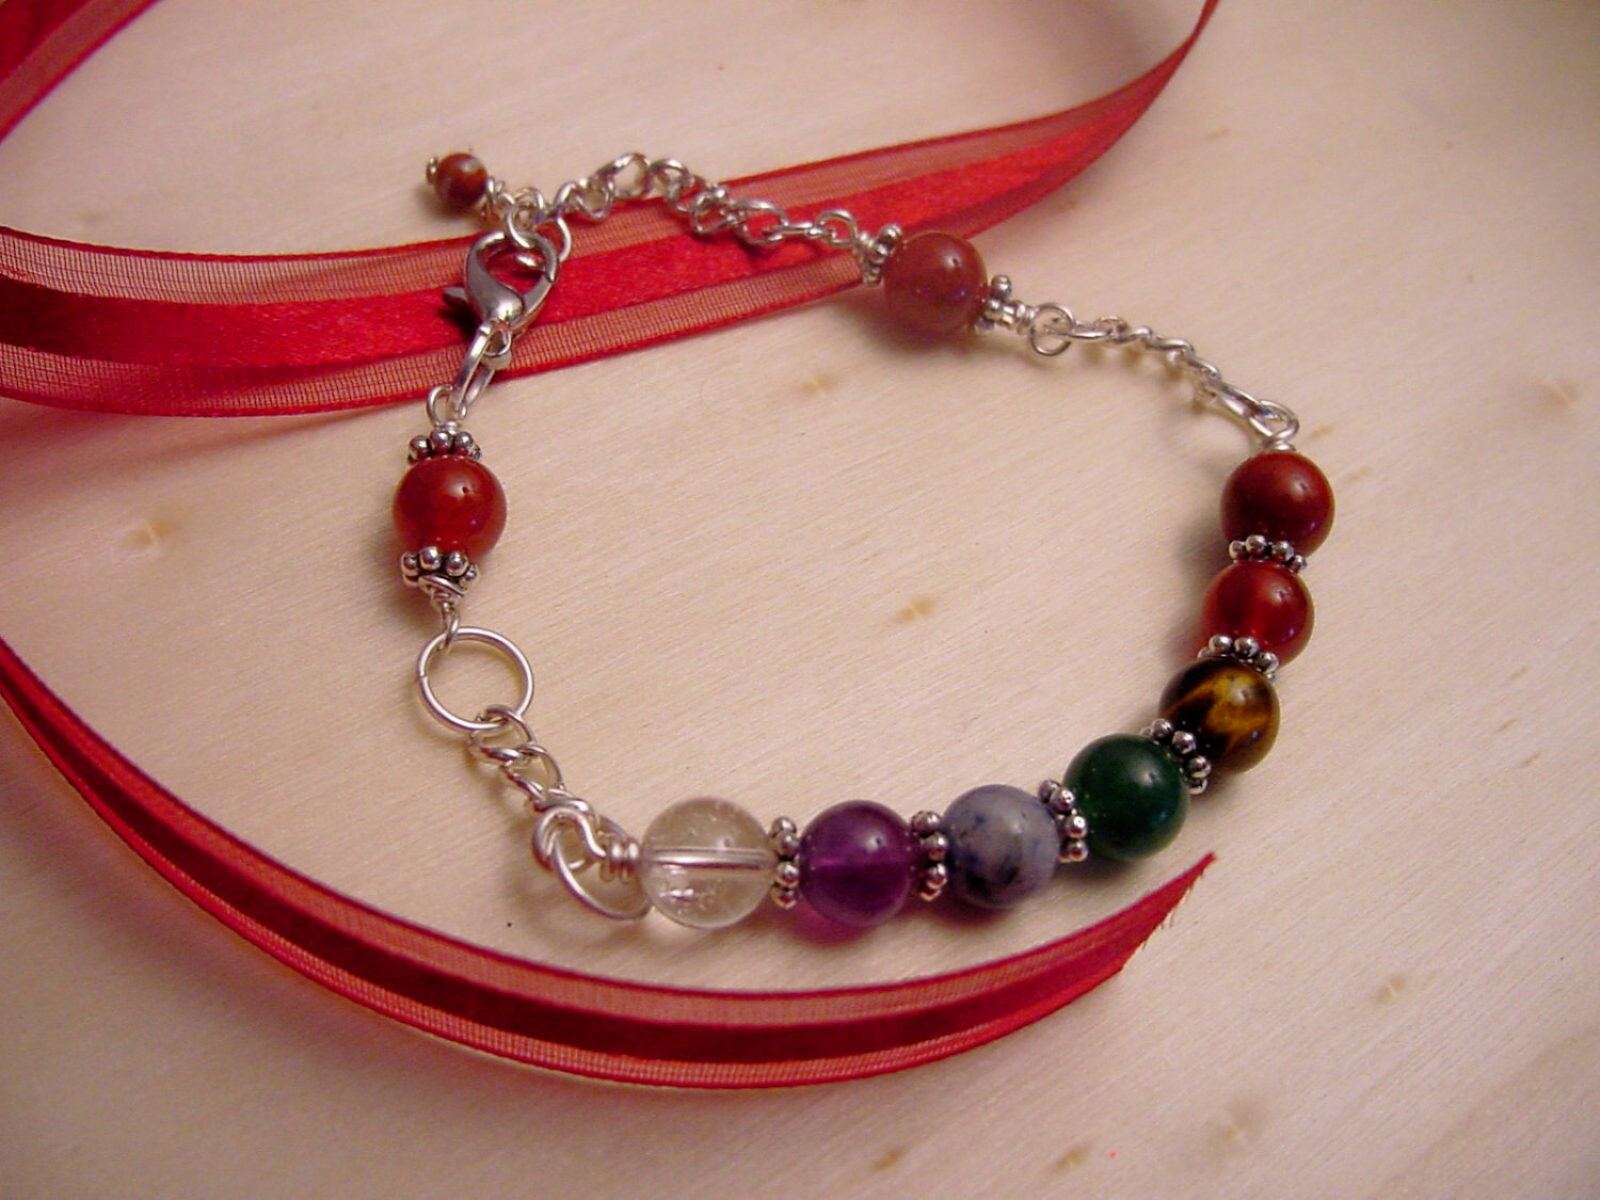 images bracelet preview s pricing valentines heart and mora pandora hq day valentine clasp